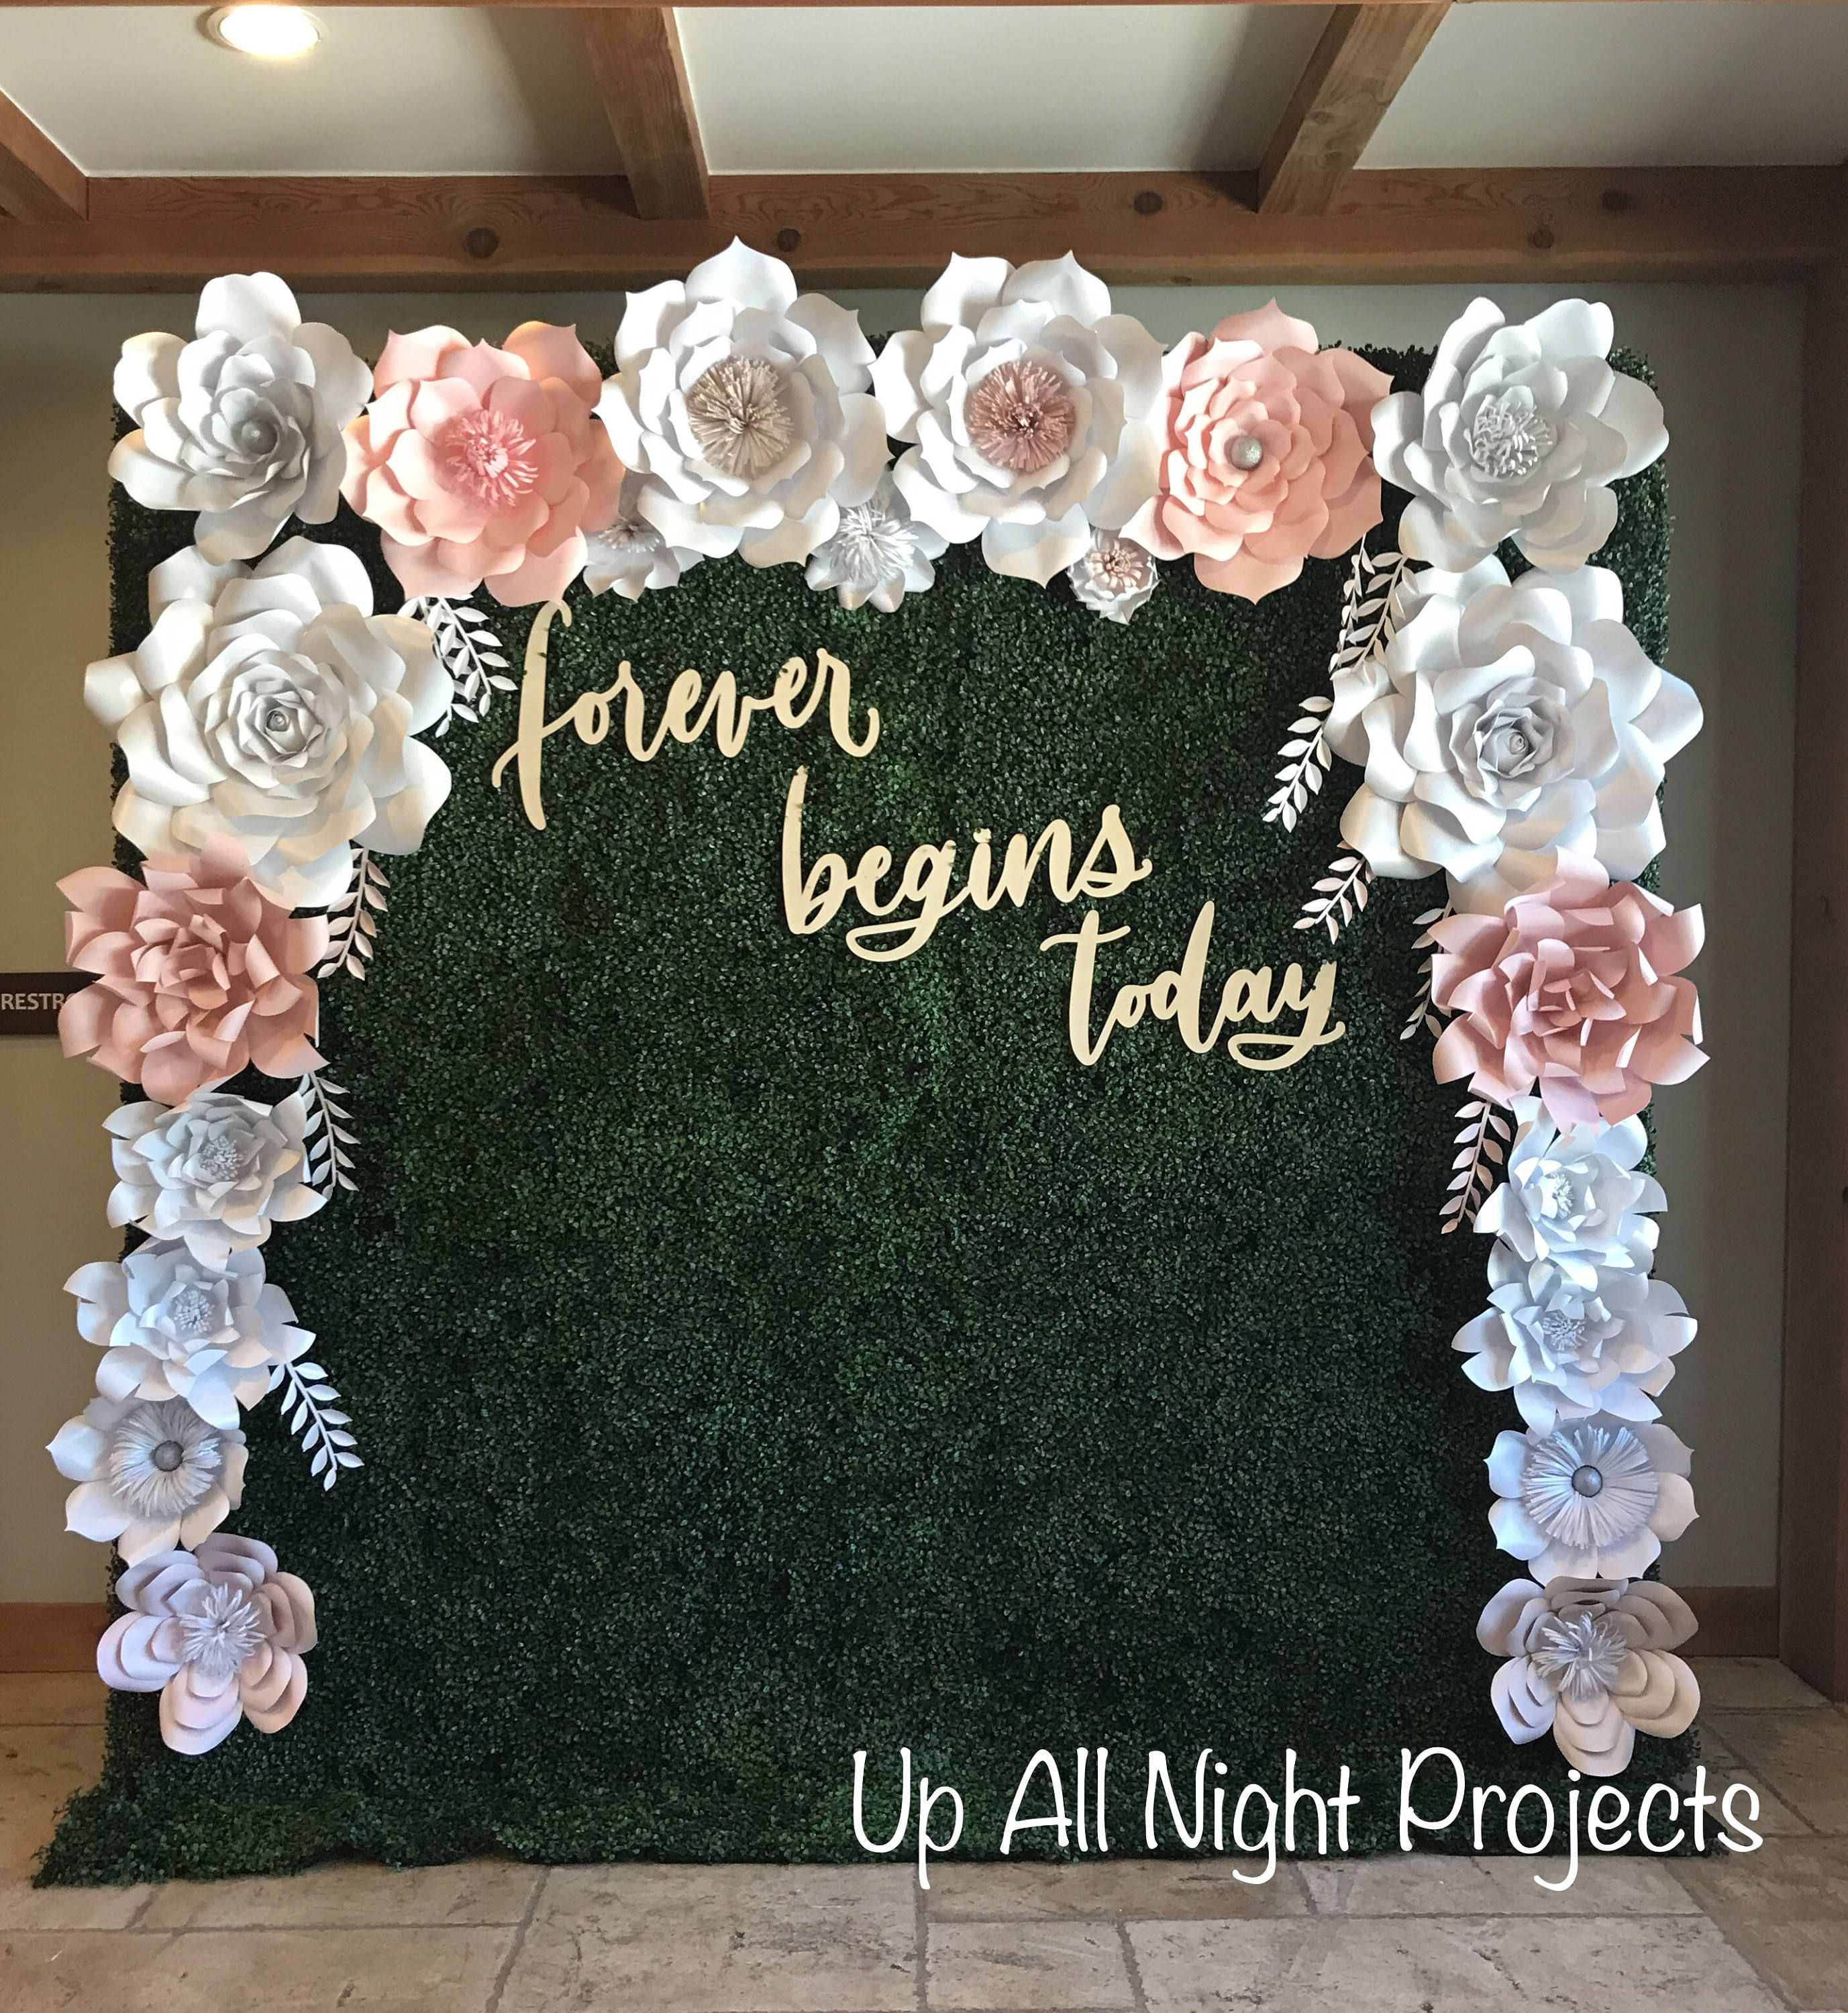 Paper Flower Backdrop or Wall Decor, Giant Paper Flowers, Wedding Backdrop, Party Flowers, Custom Paper Flowers #paperflowersdiy